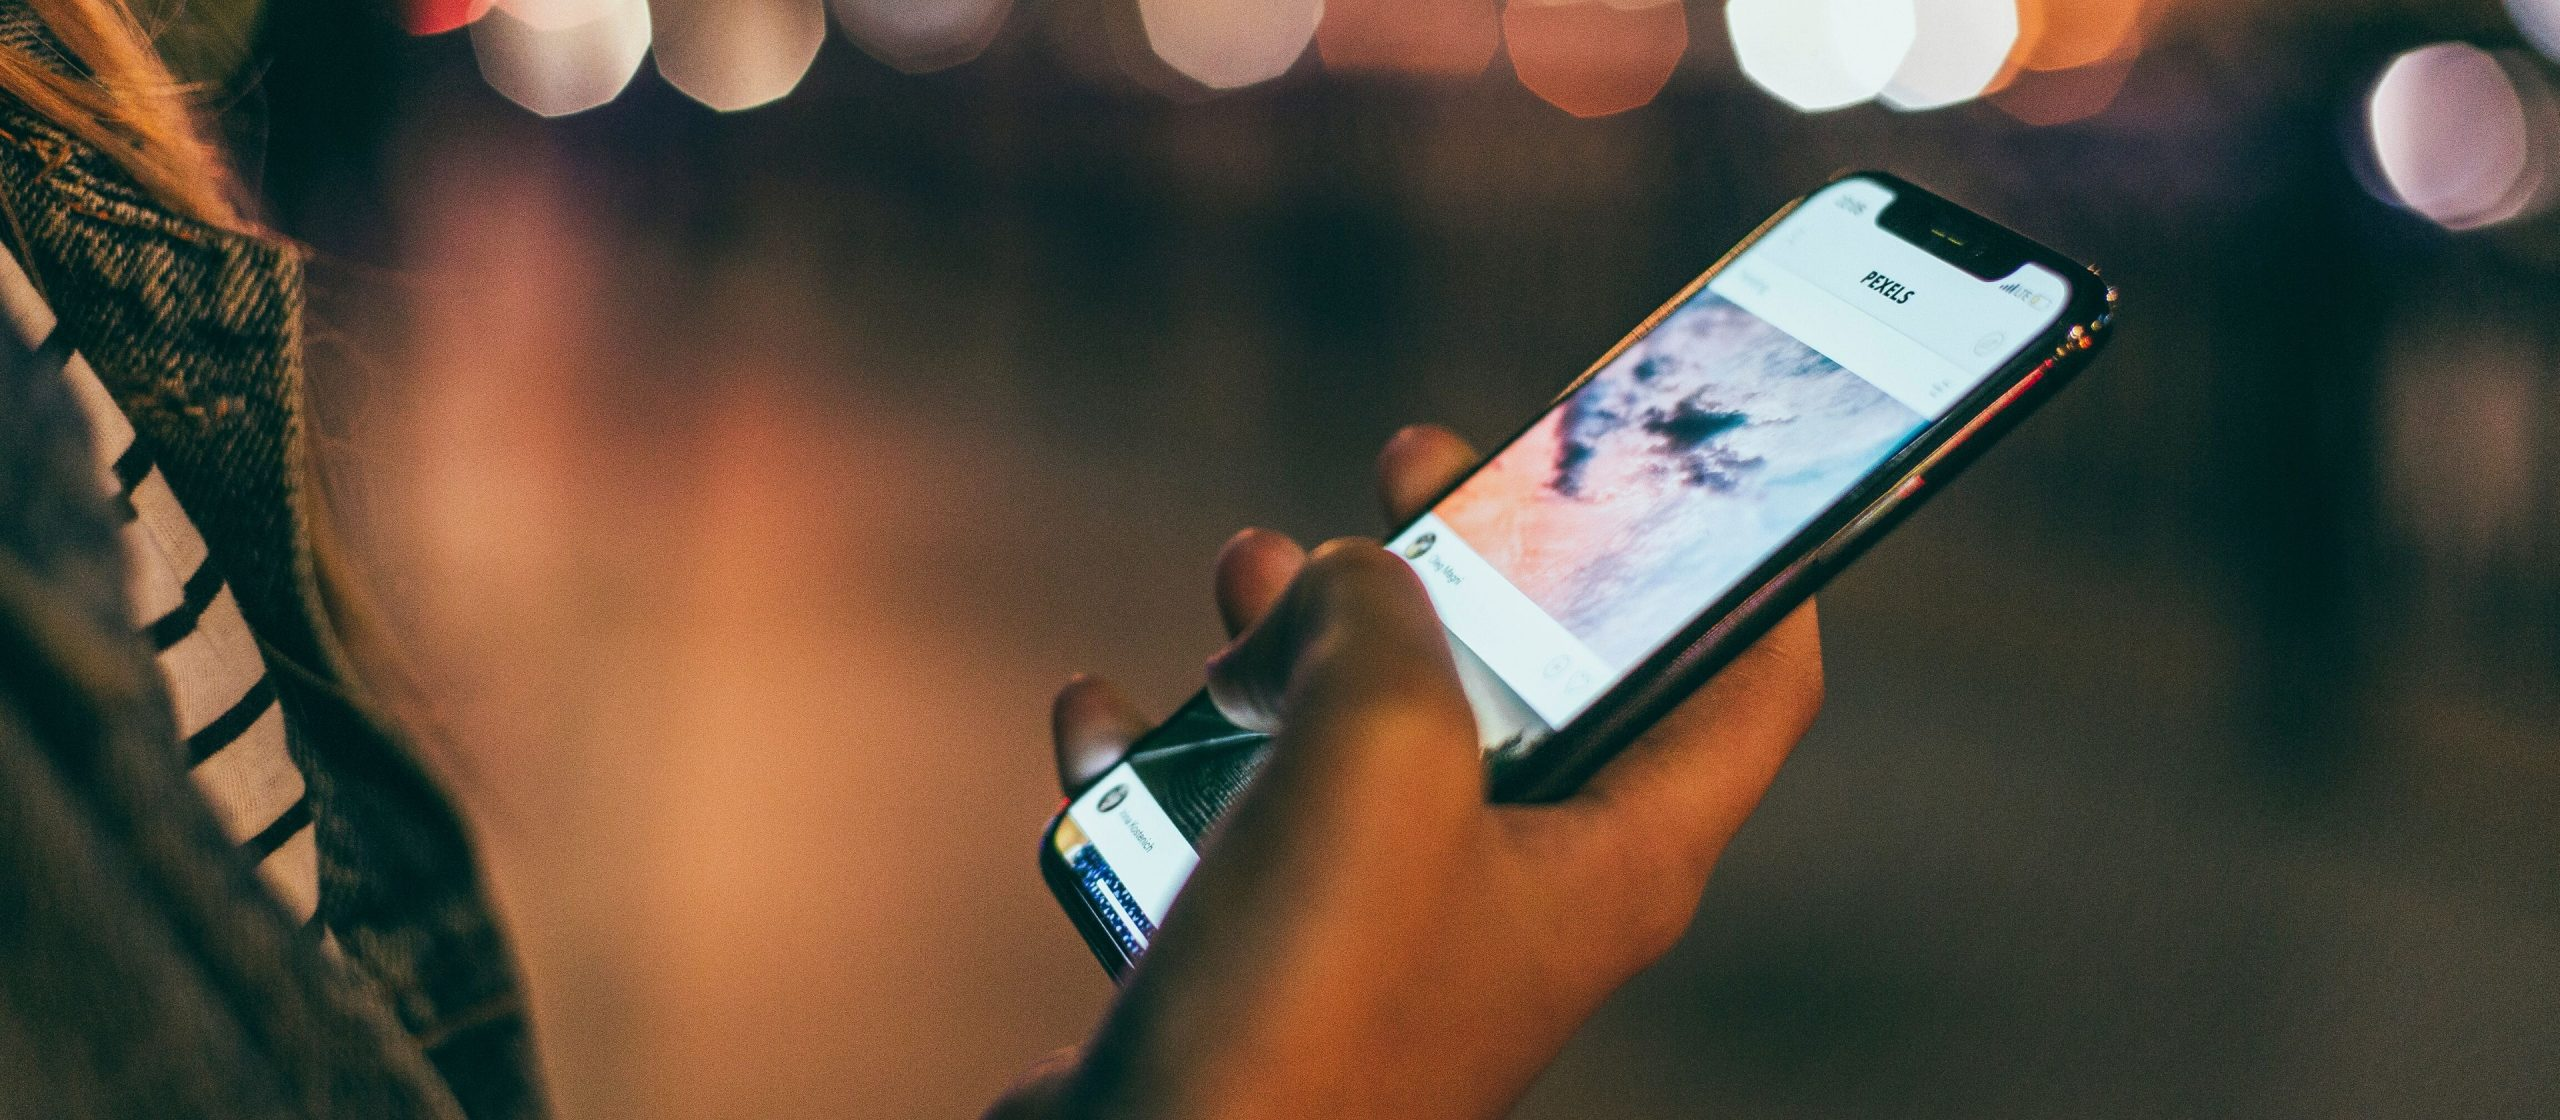 Influencer Marketing: What We Can Glean from Marketers' Shortfalls